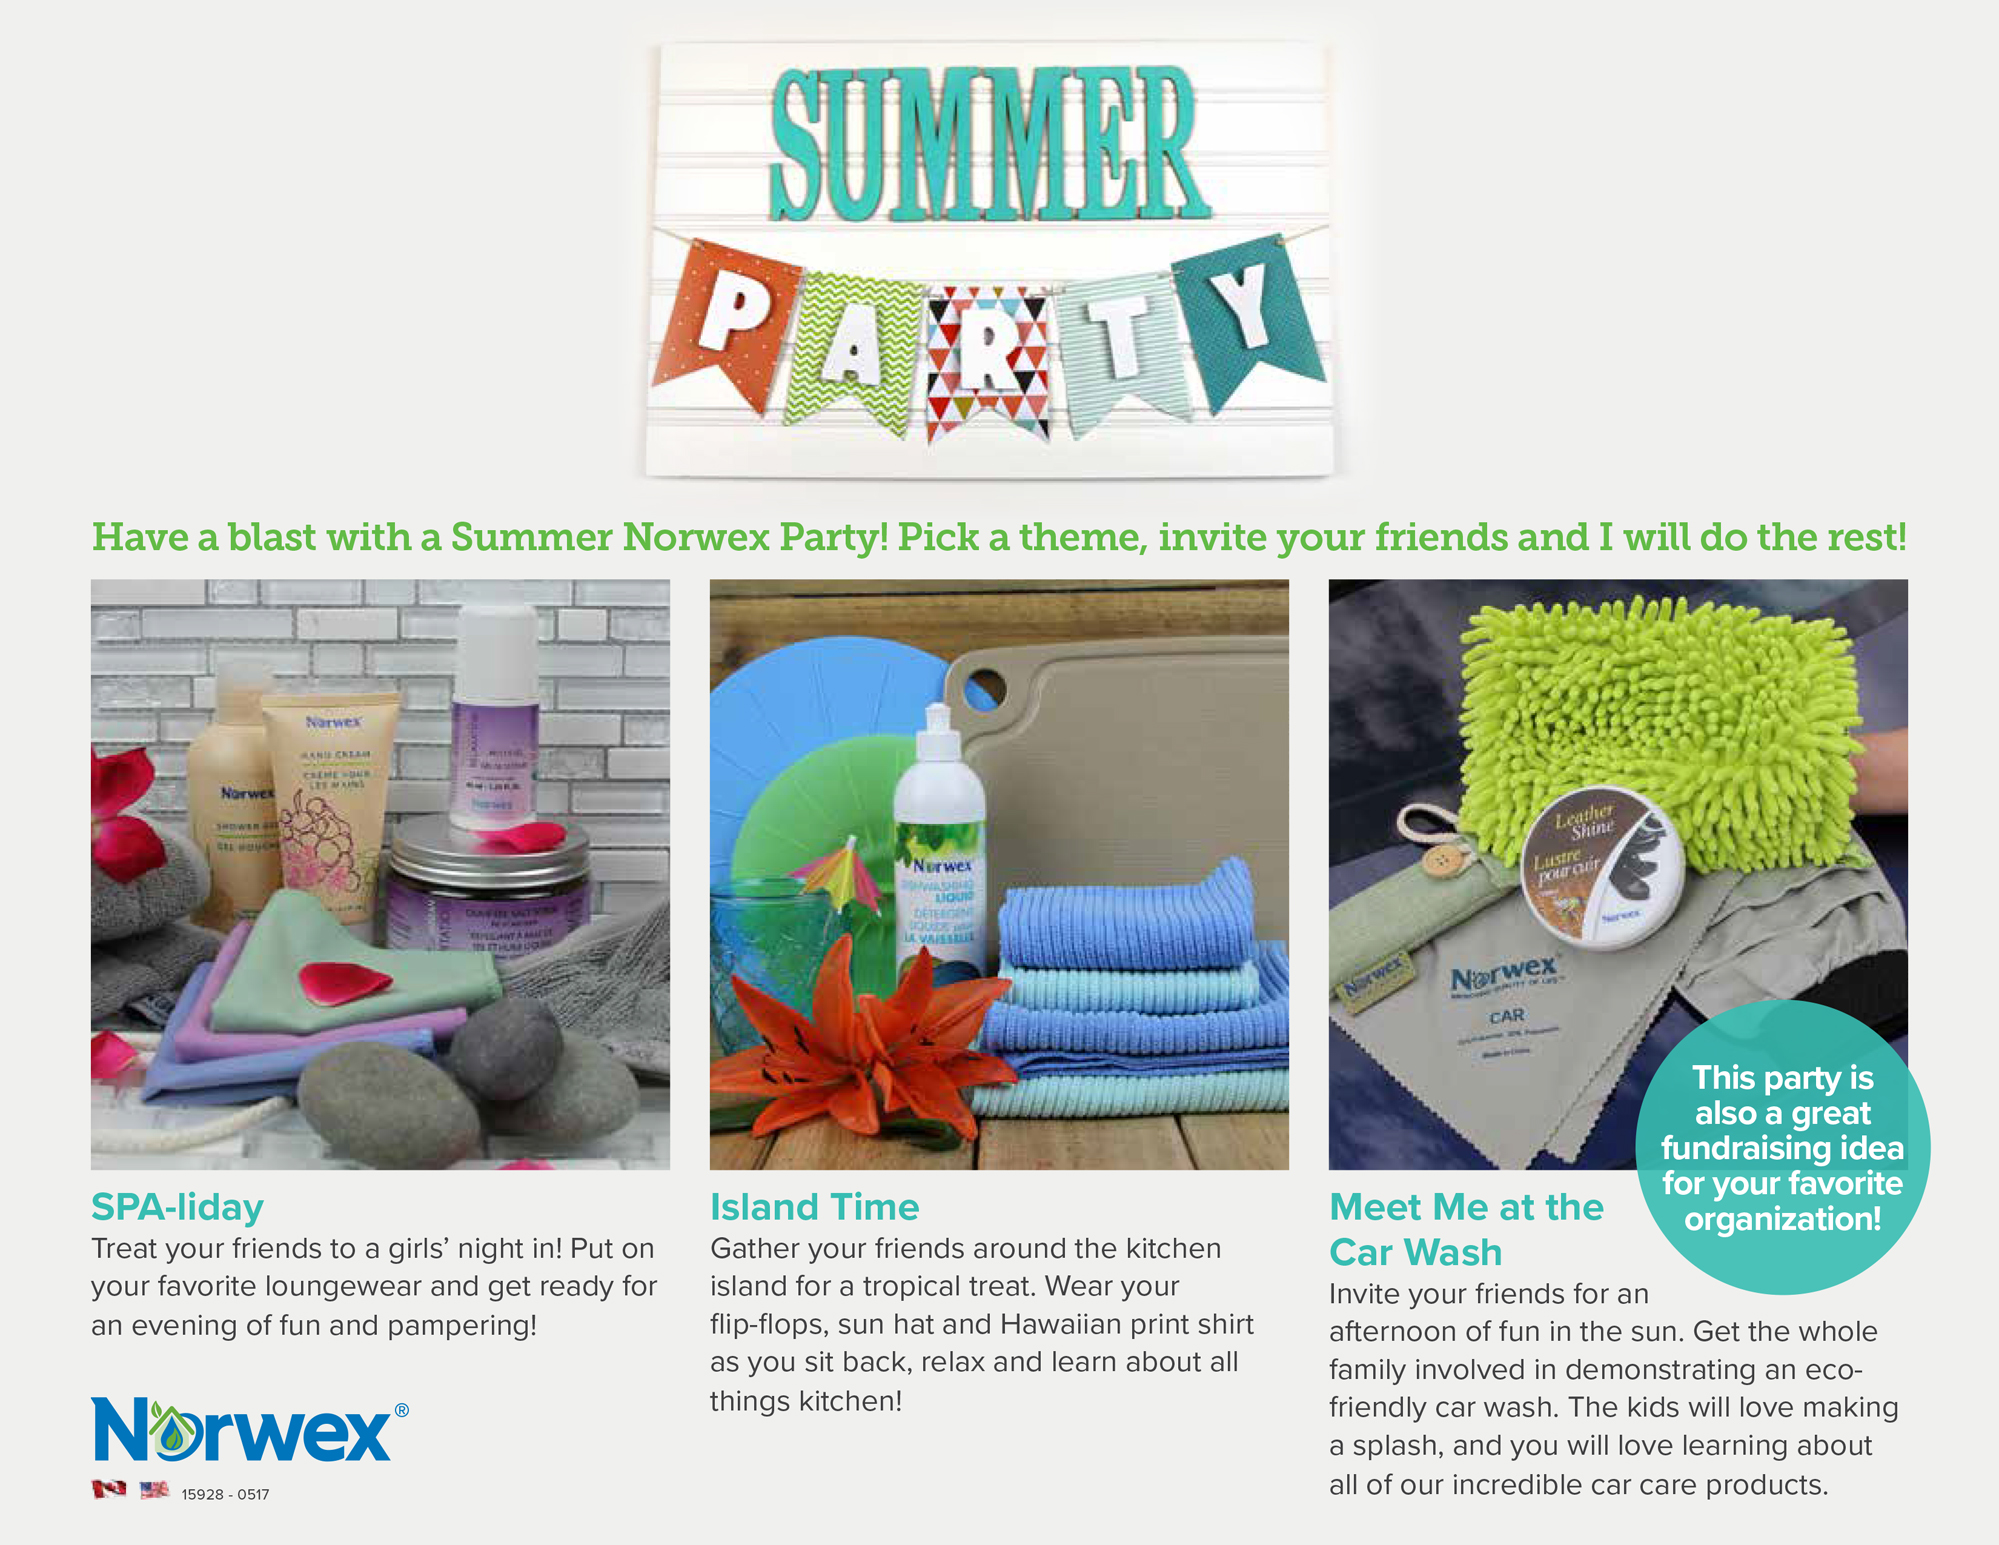 Have a Summer Norwex Party! - Norwex Products